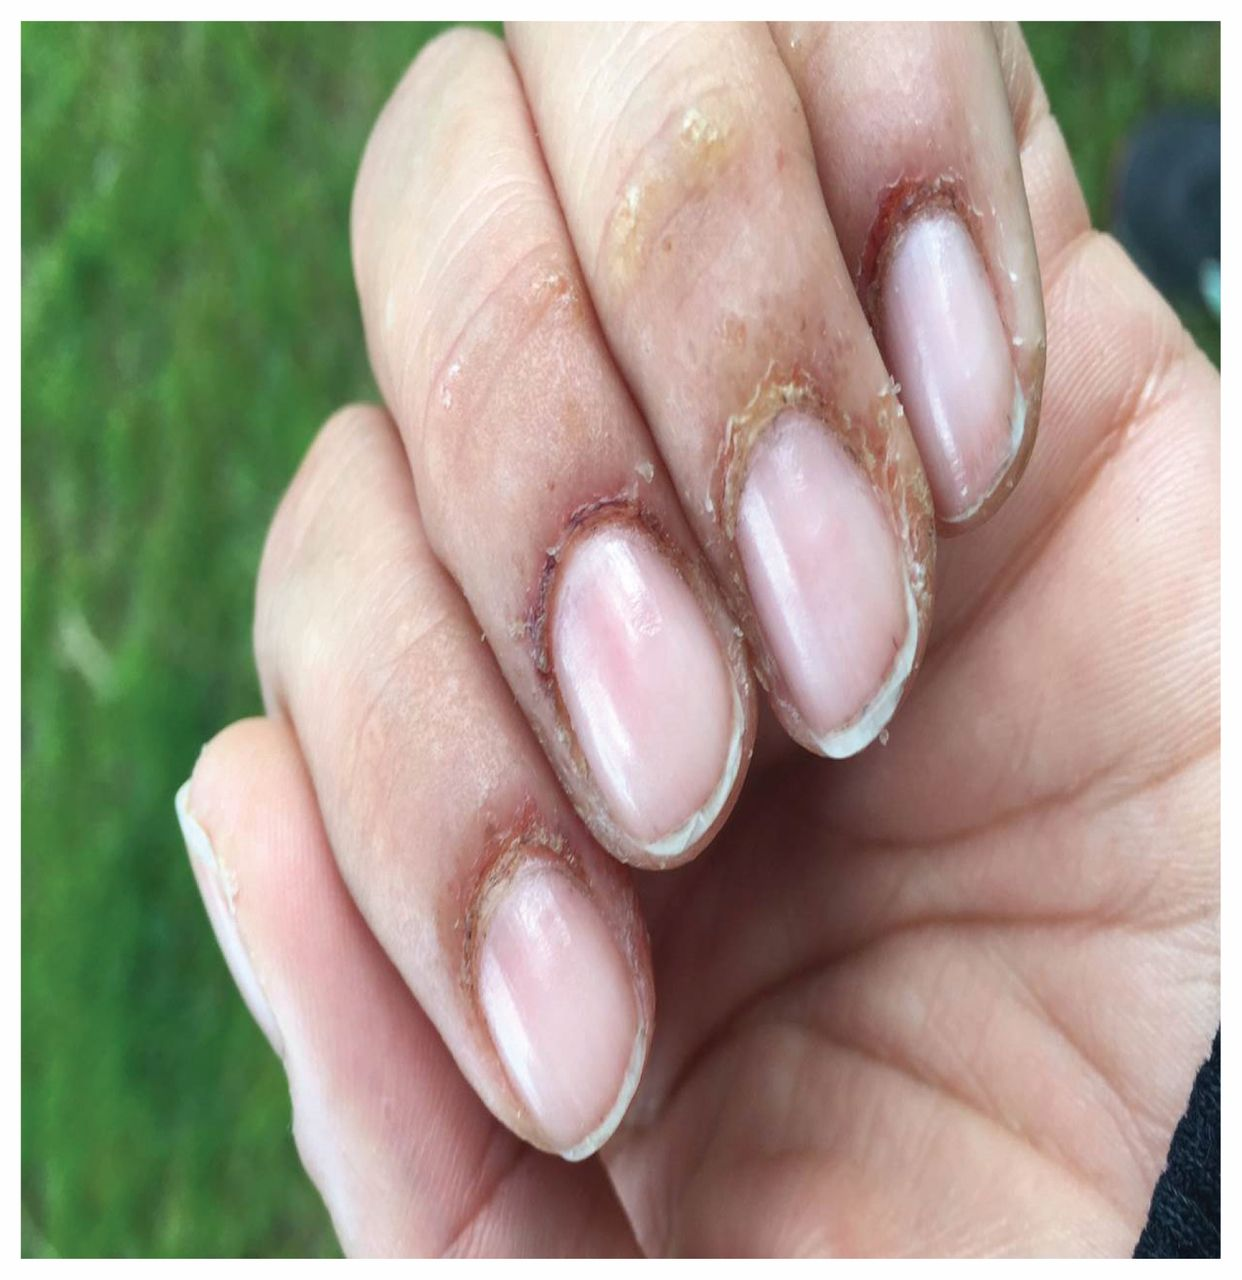 Contact dermatitis caused by methacrylates in nail products